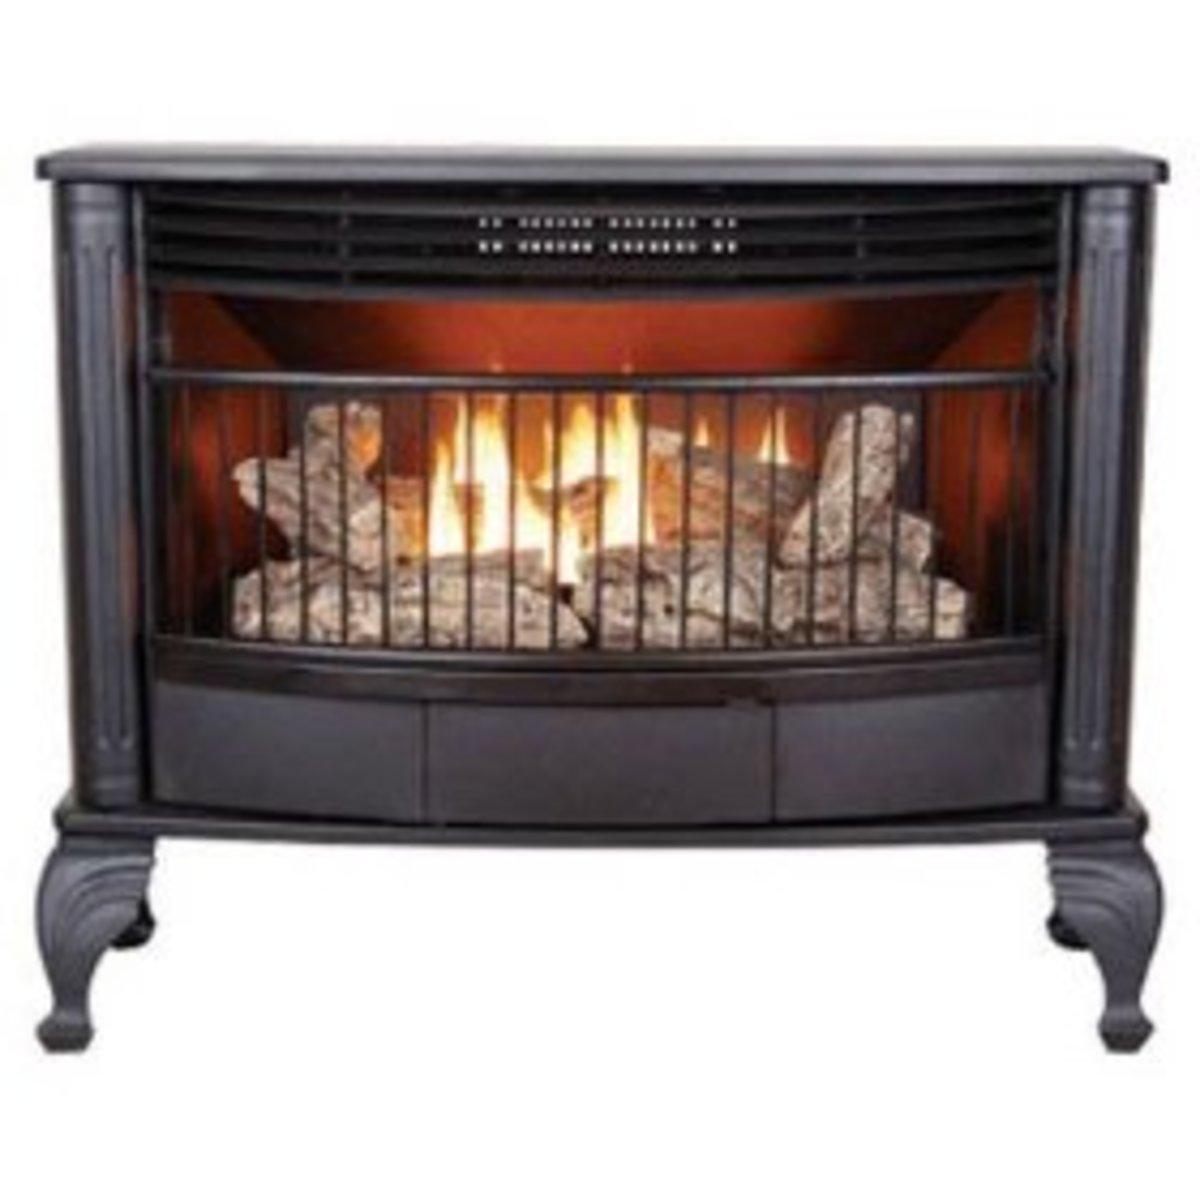 Best Propane Fireplace For The Home | HubPages